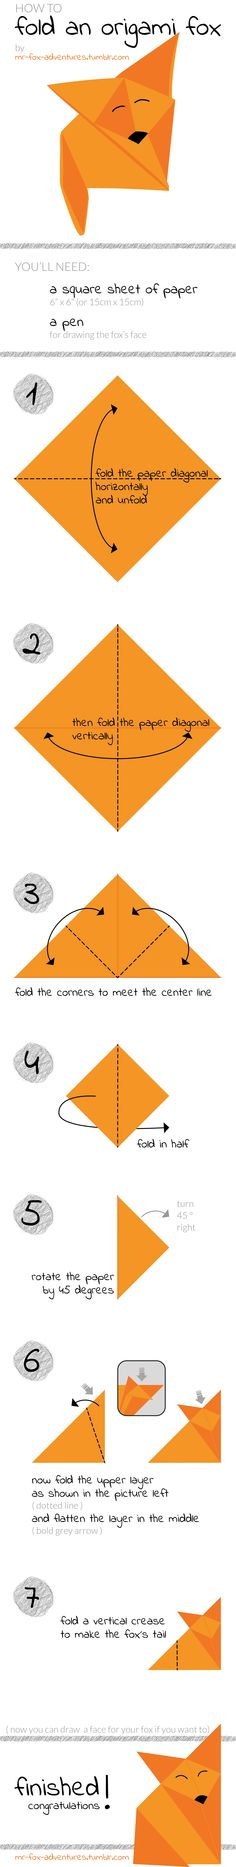 Origami Fox Tutorial for my blog http://mr-fox-adventures.tumblr.com/ #diy #origami #fox